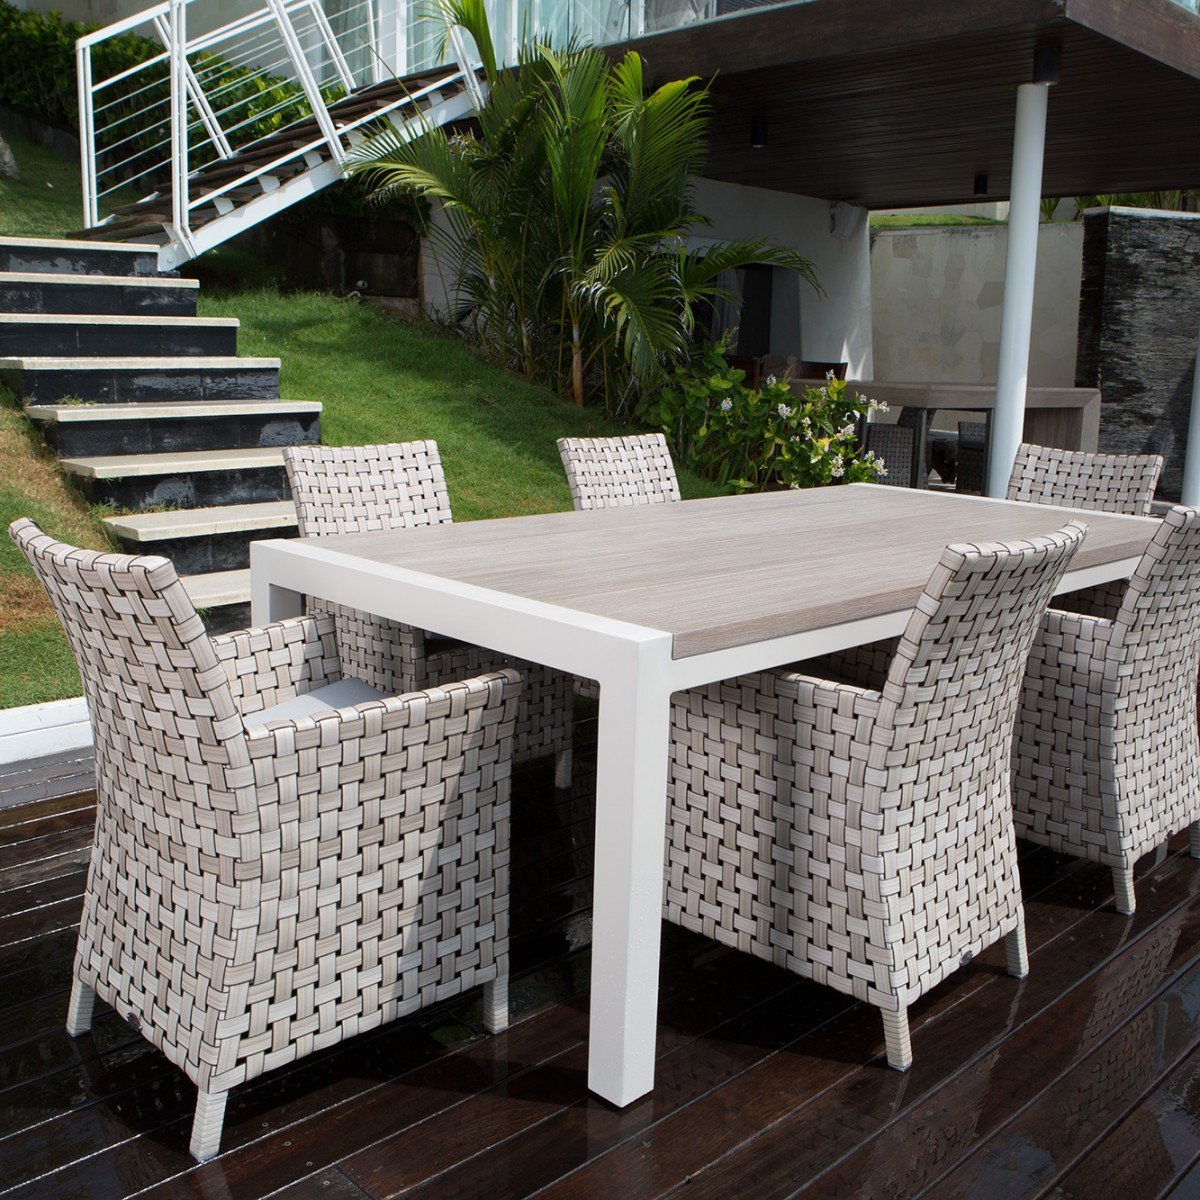 6 Seater Garden Dining Set Consisting Of 6 Dining Chairs With Armrests Dafne Italian Design